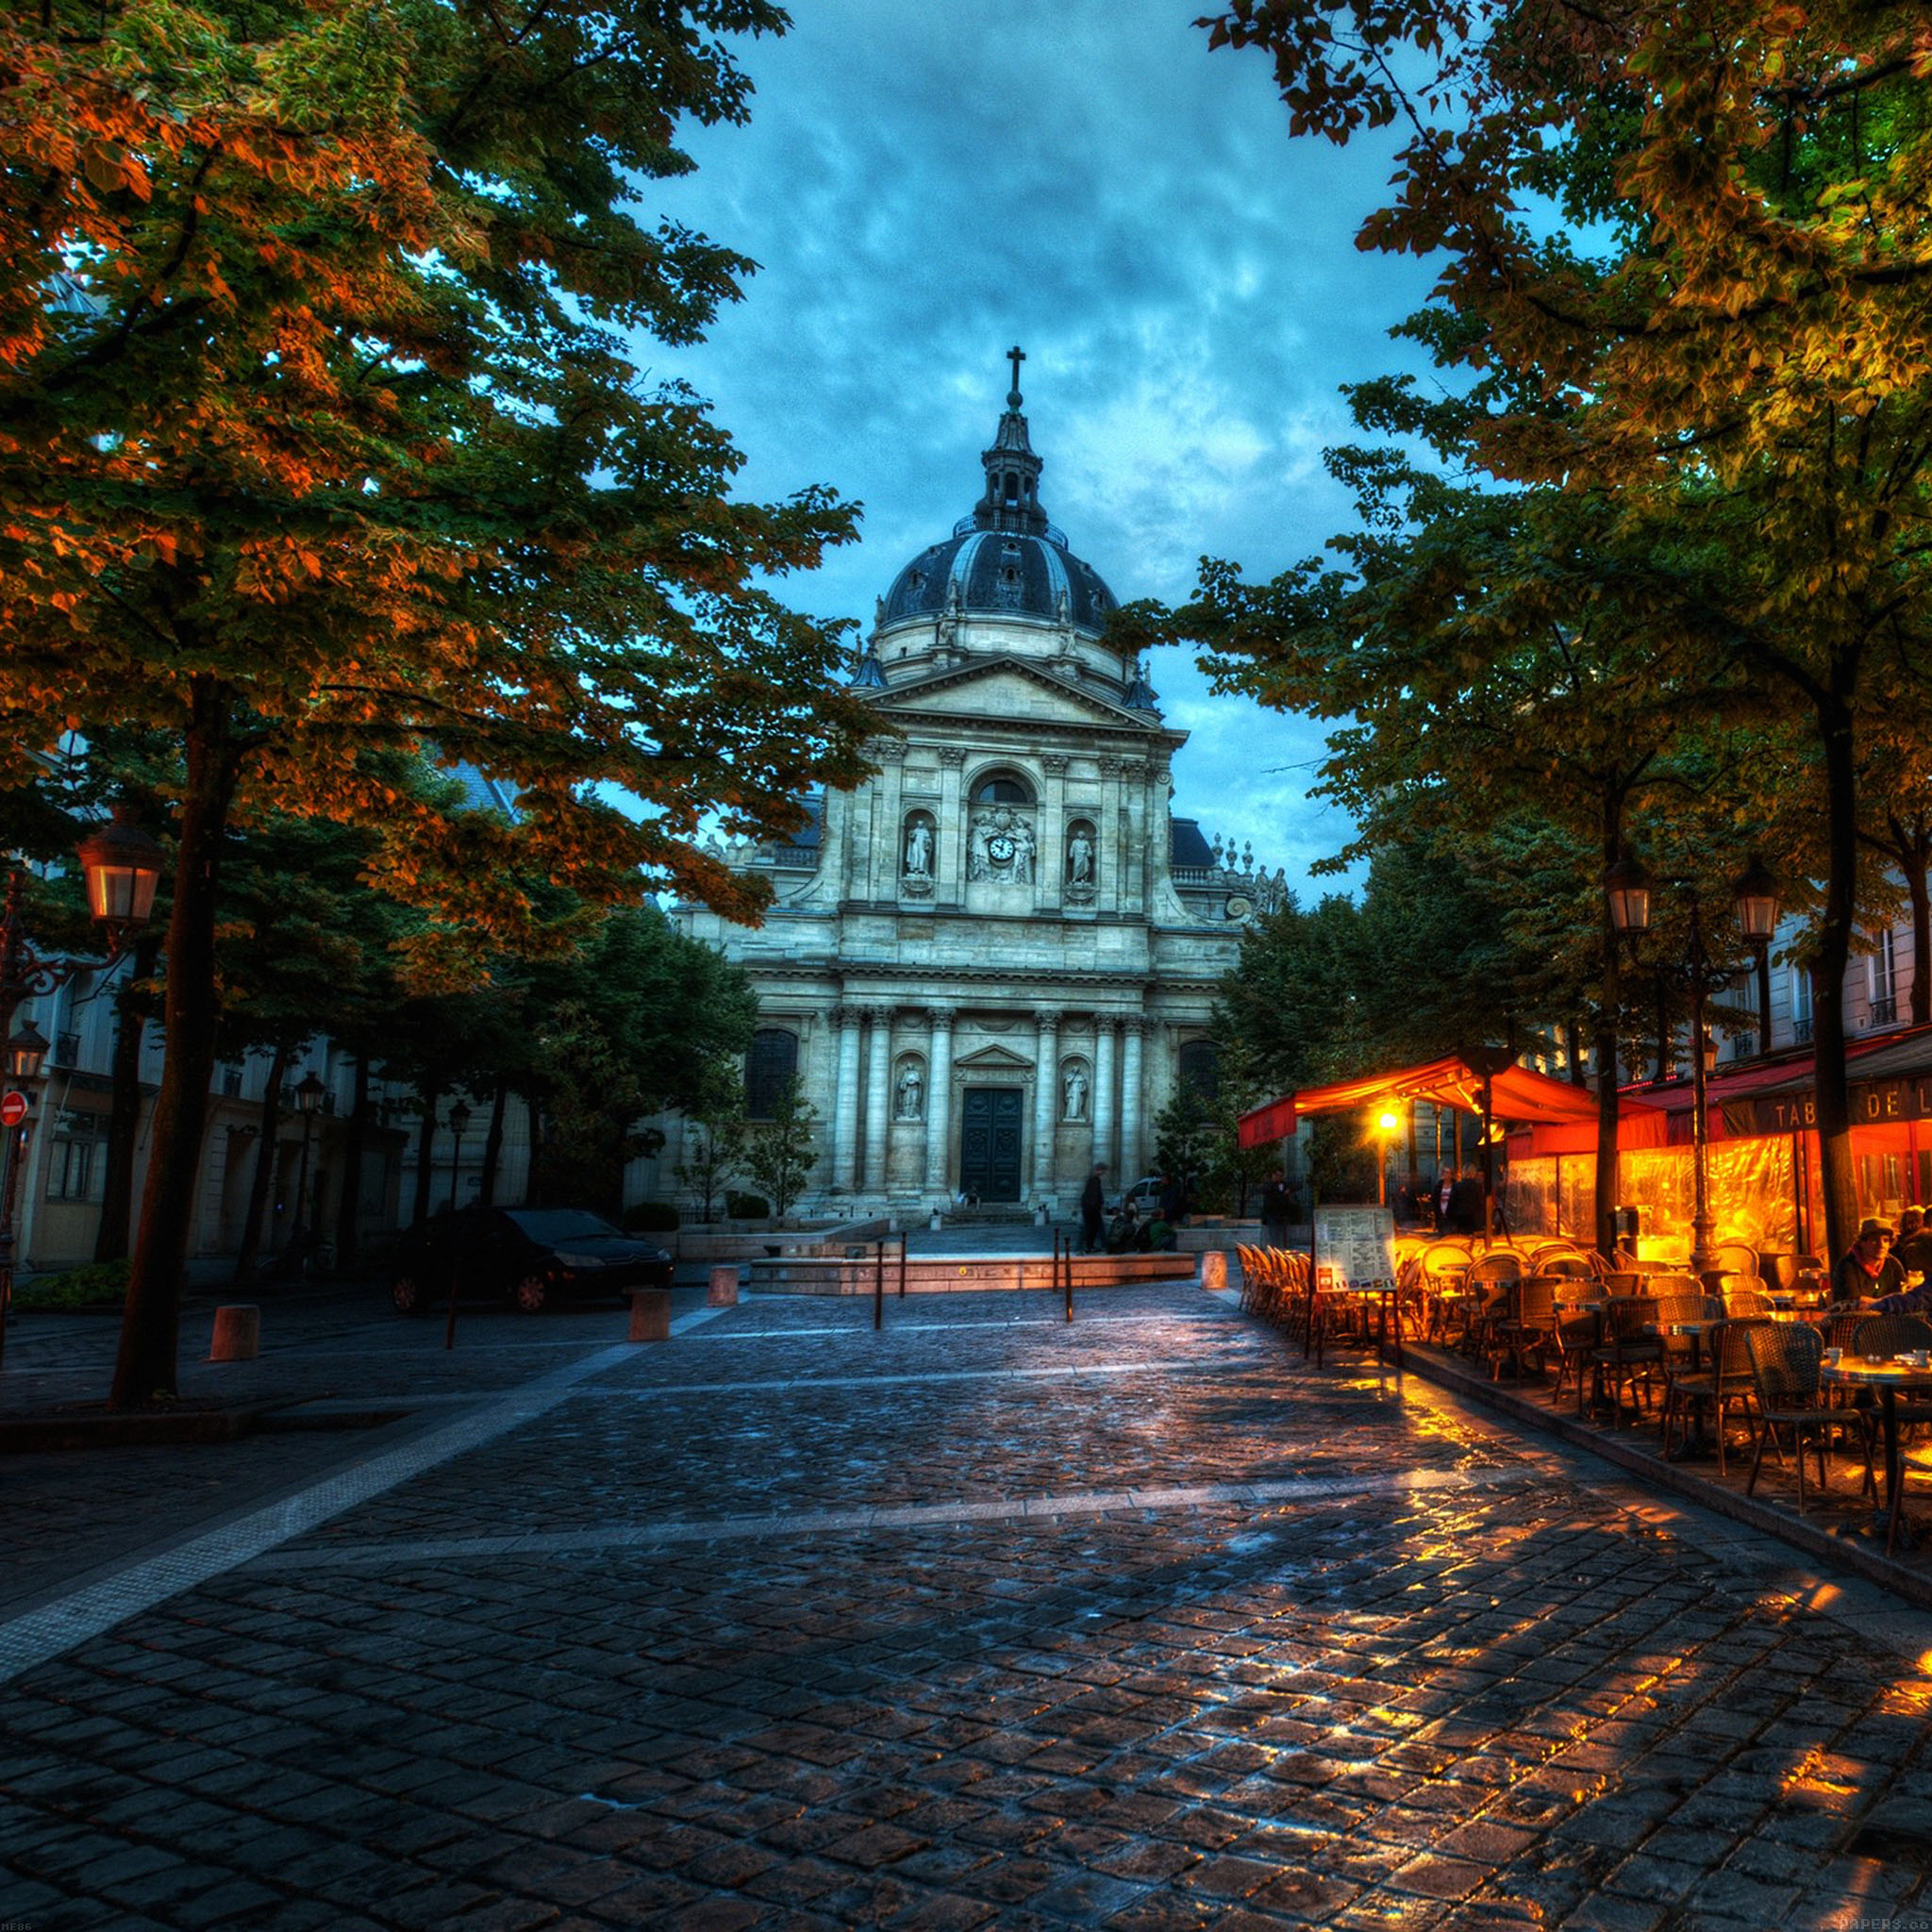 Car Hd Wallpaper For Iphone Me86 De La Sorbonne City Street Art Papers Co